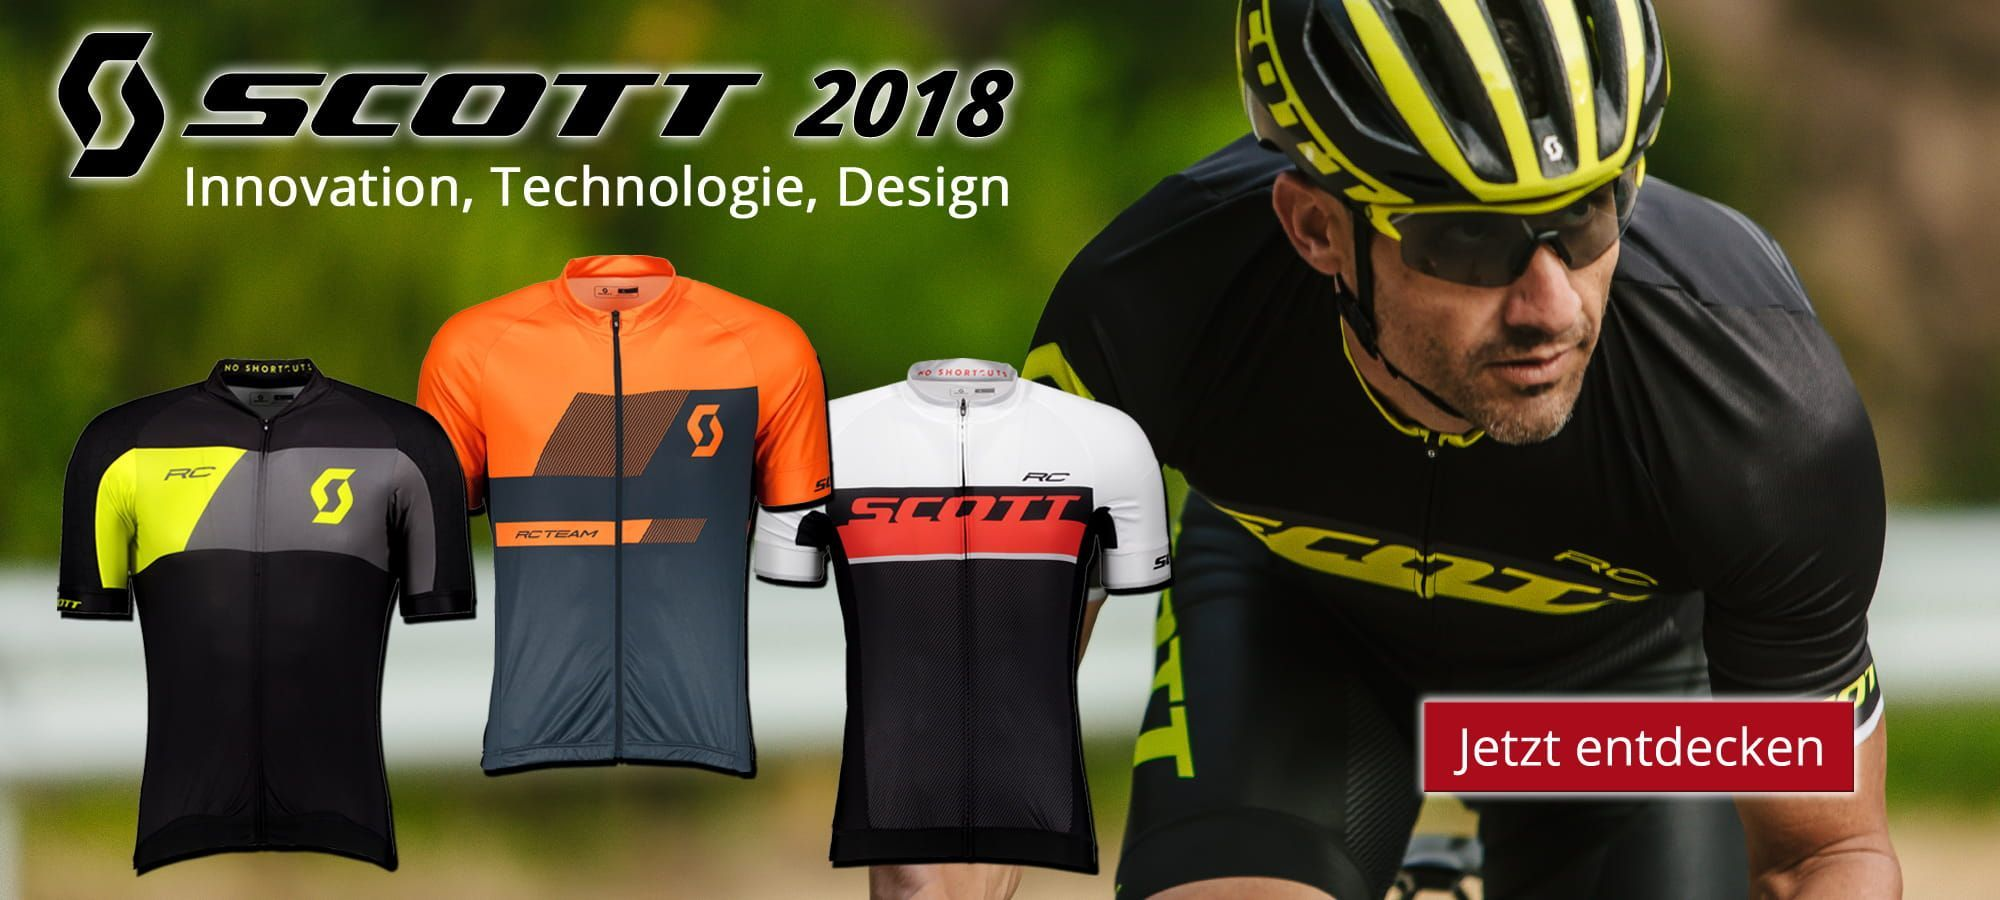 Scott 2018 - Innovation, Technologie, Design